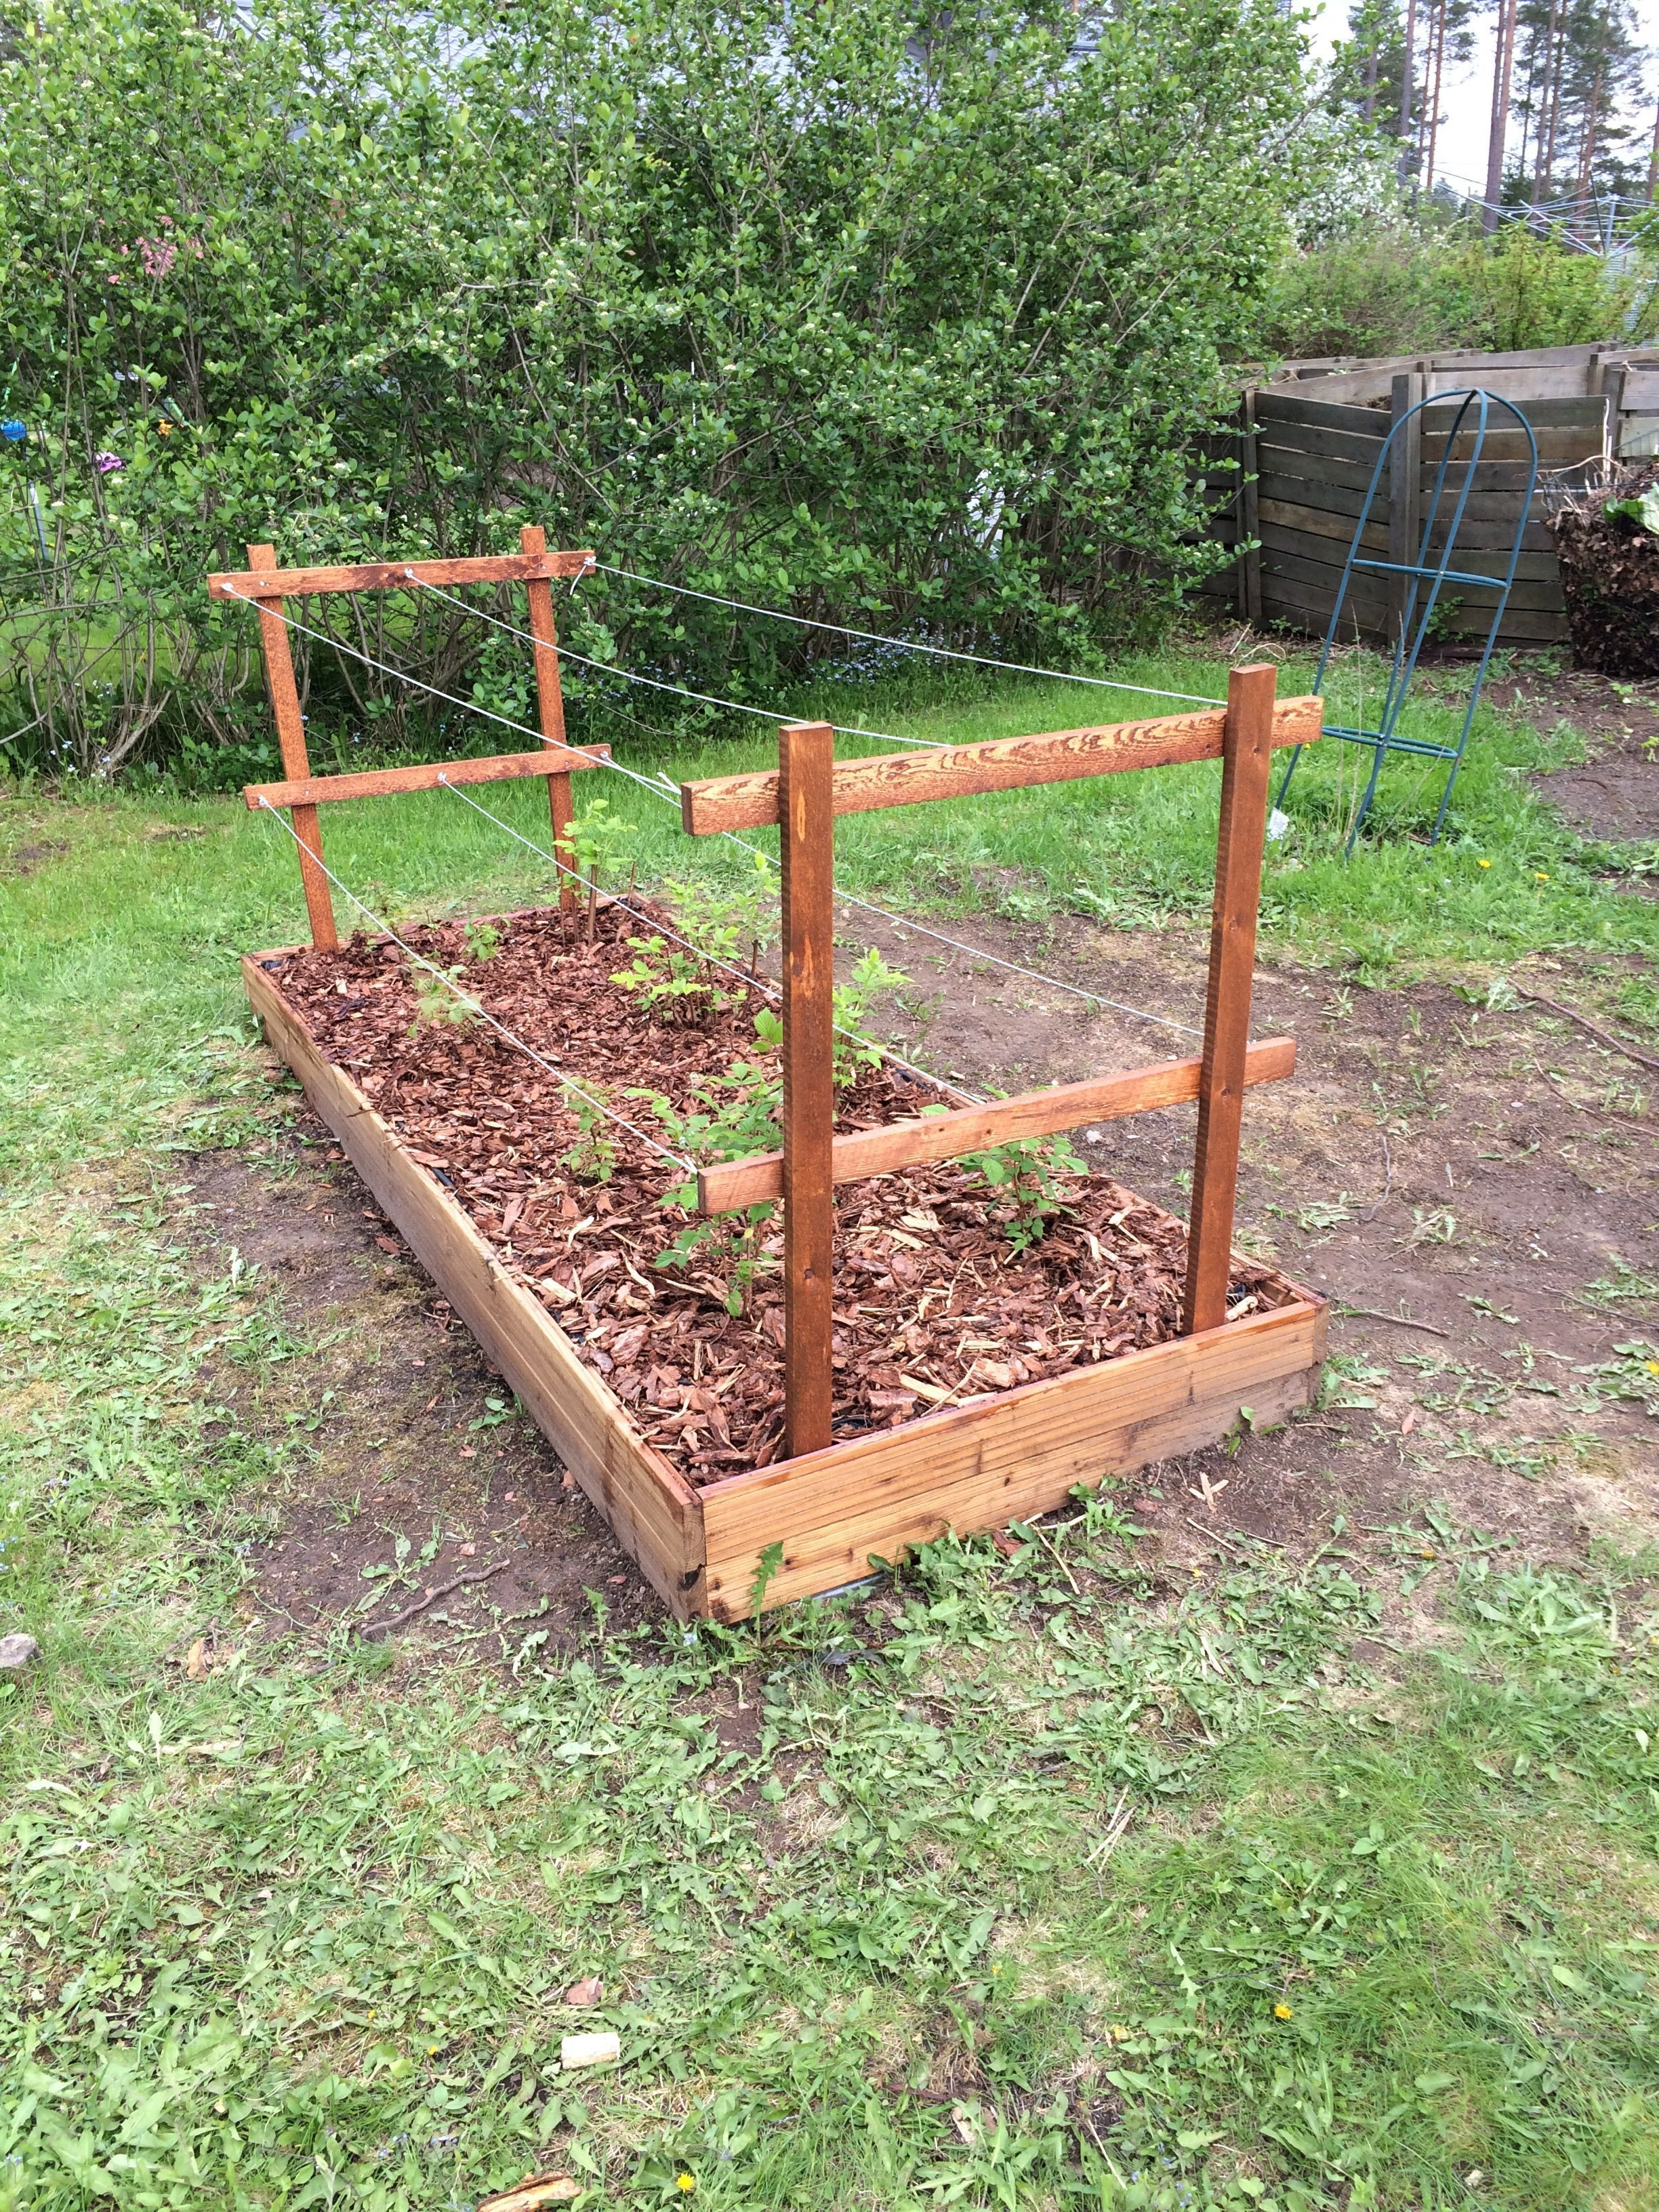 diy raised bed made from heat treated wood pine or similar and